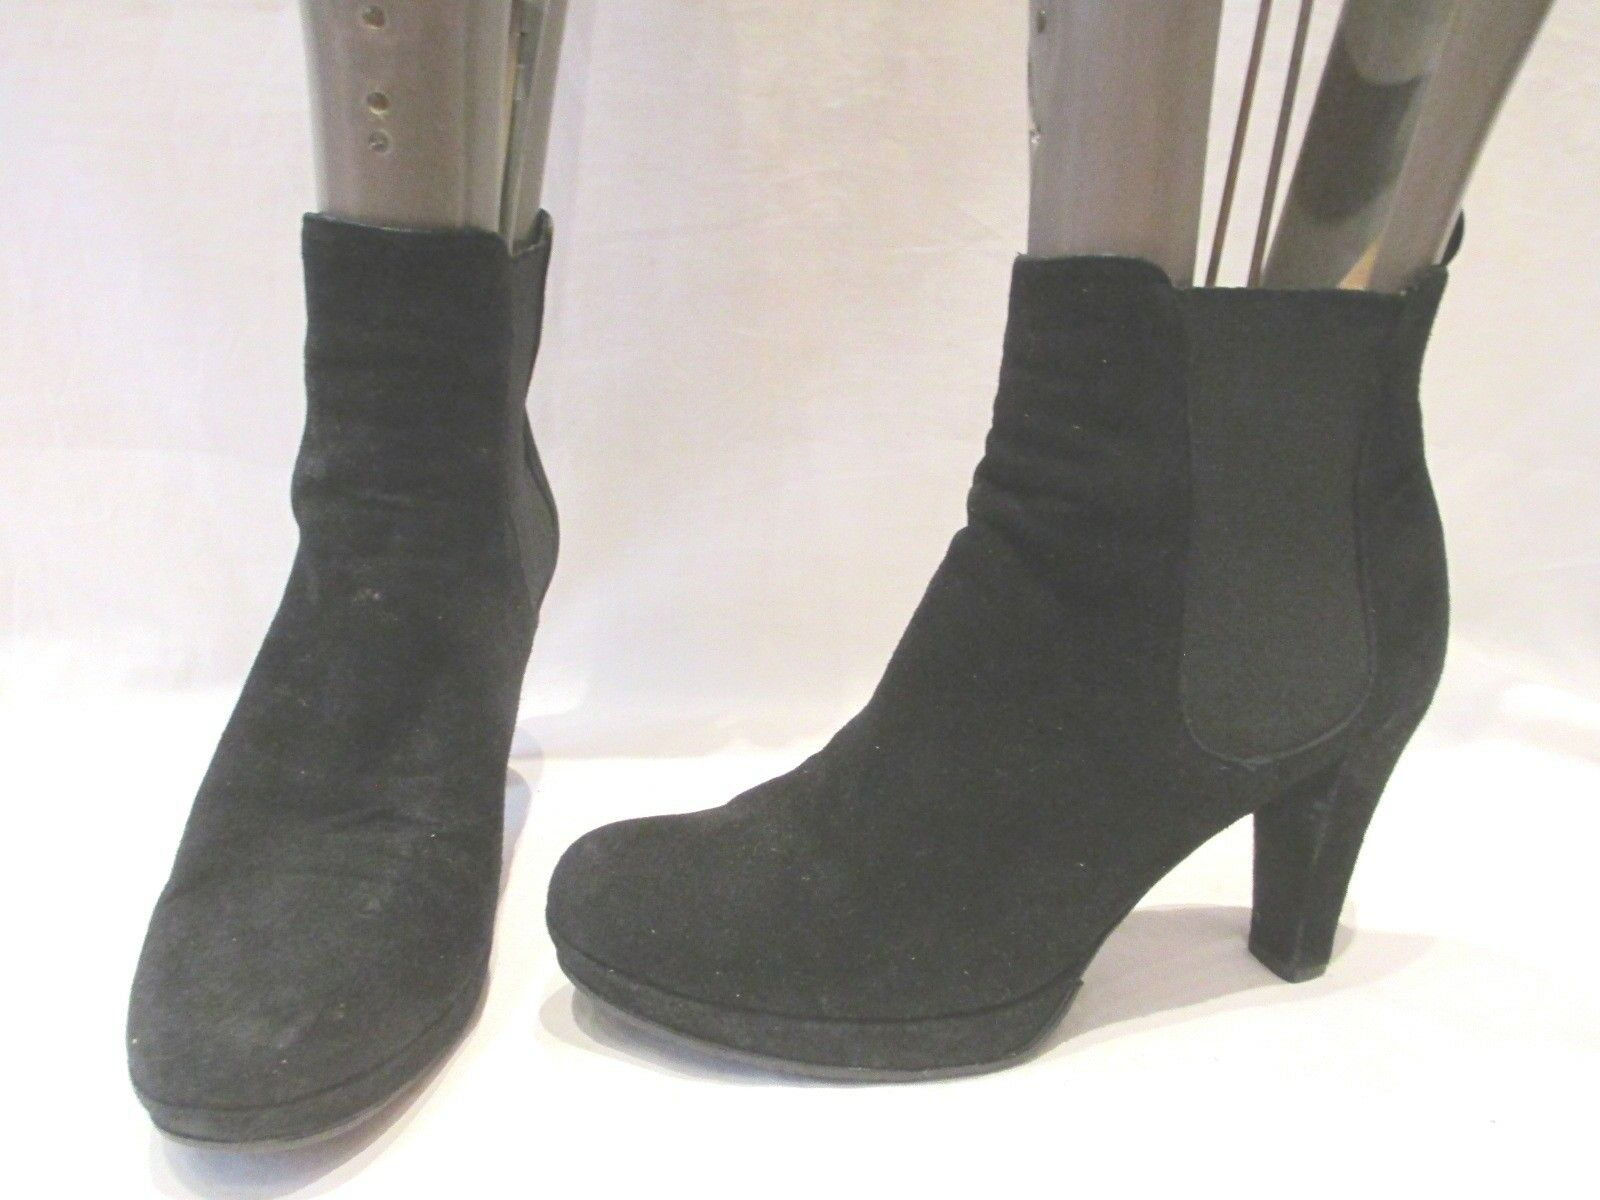 BODEN BLACK SUEDE PULL ON HEELED ANKLE BOOTS UK 7.5 EU 41 (1161)